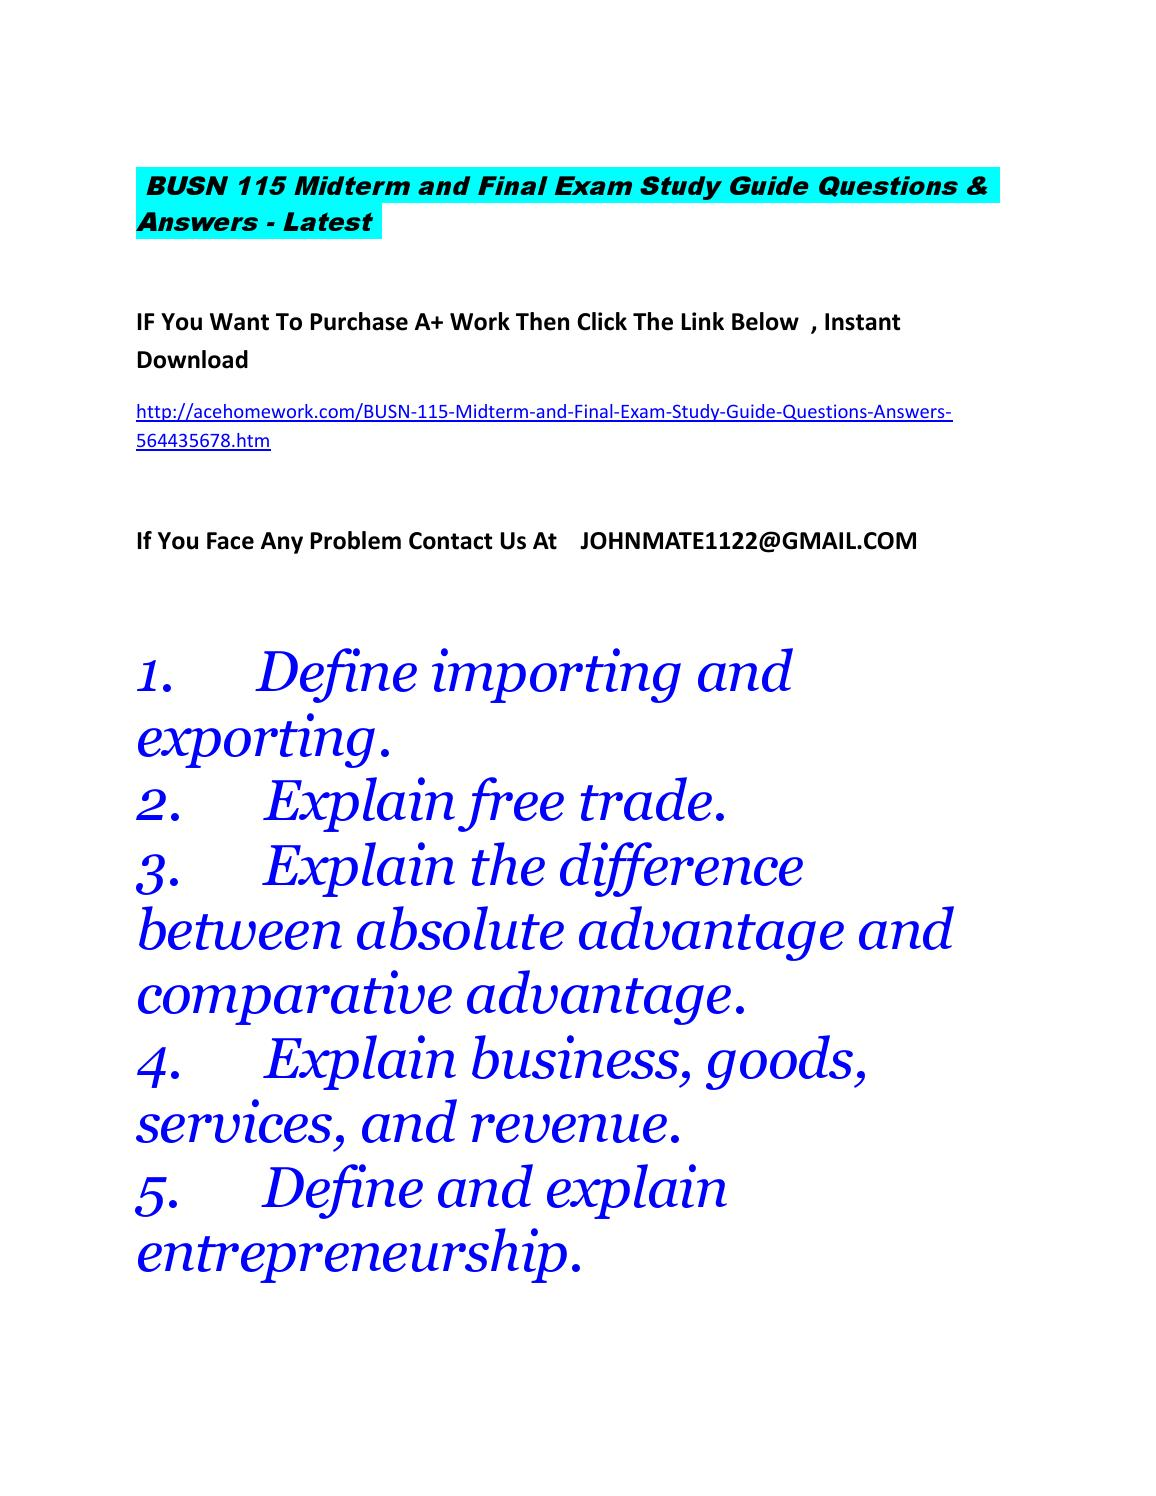 explain the difference between comparative and absolute advantage essay E72 define and distinguish between absolute and comparative advantage and   uncedu/depts/econ/byrns_web/economicae/essays/abs_comp_advhtm.